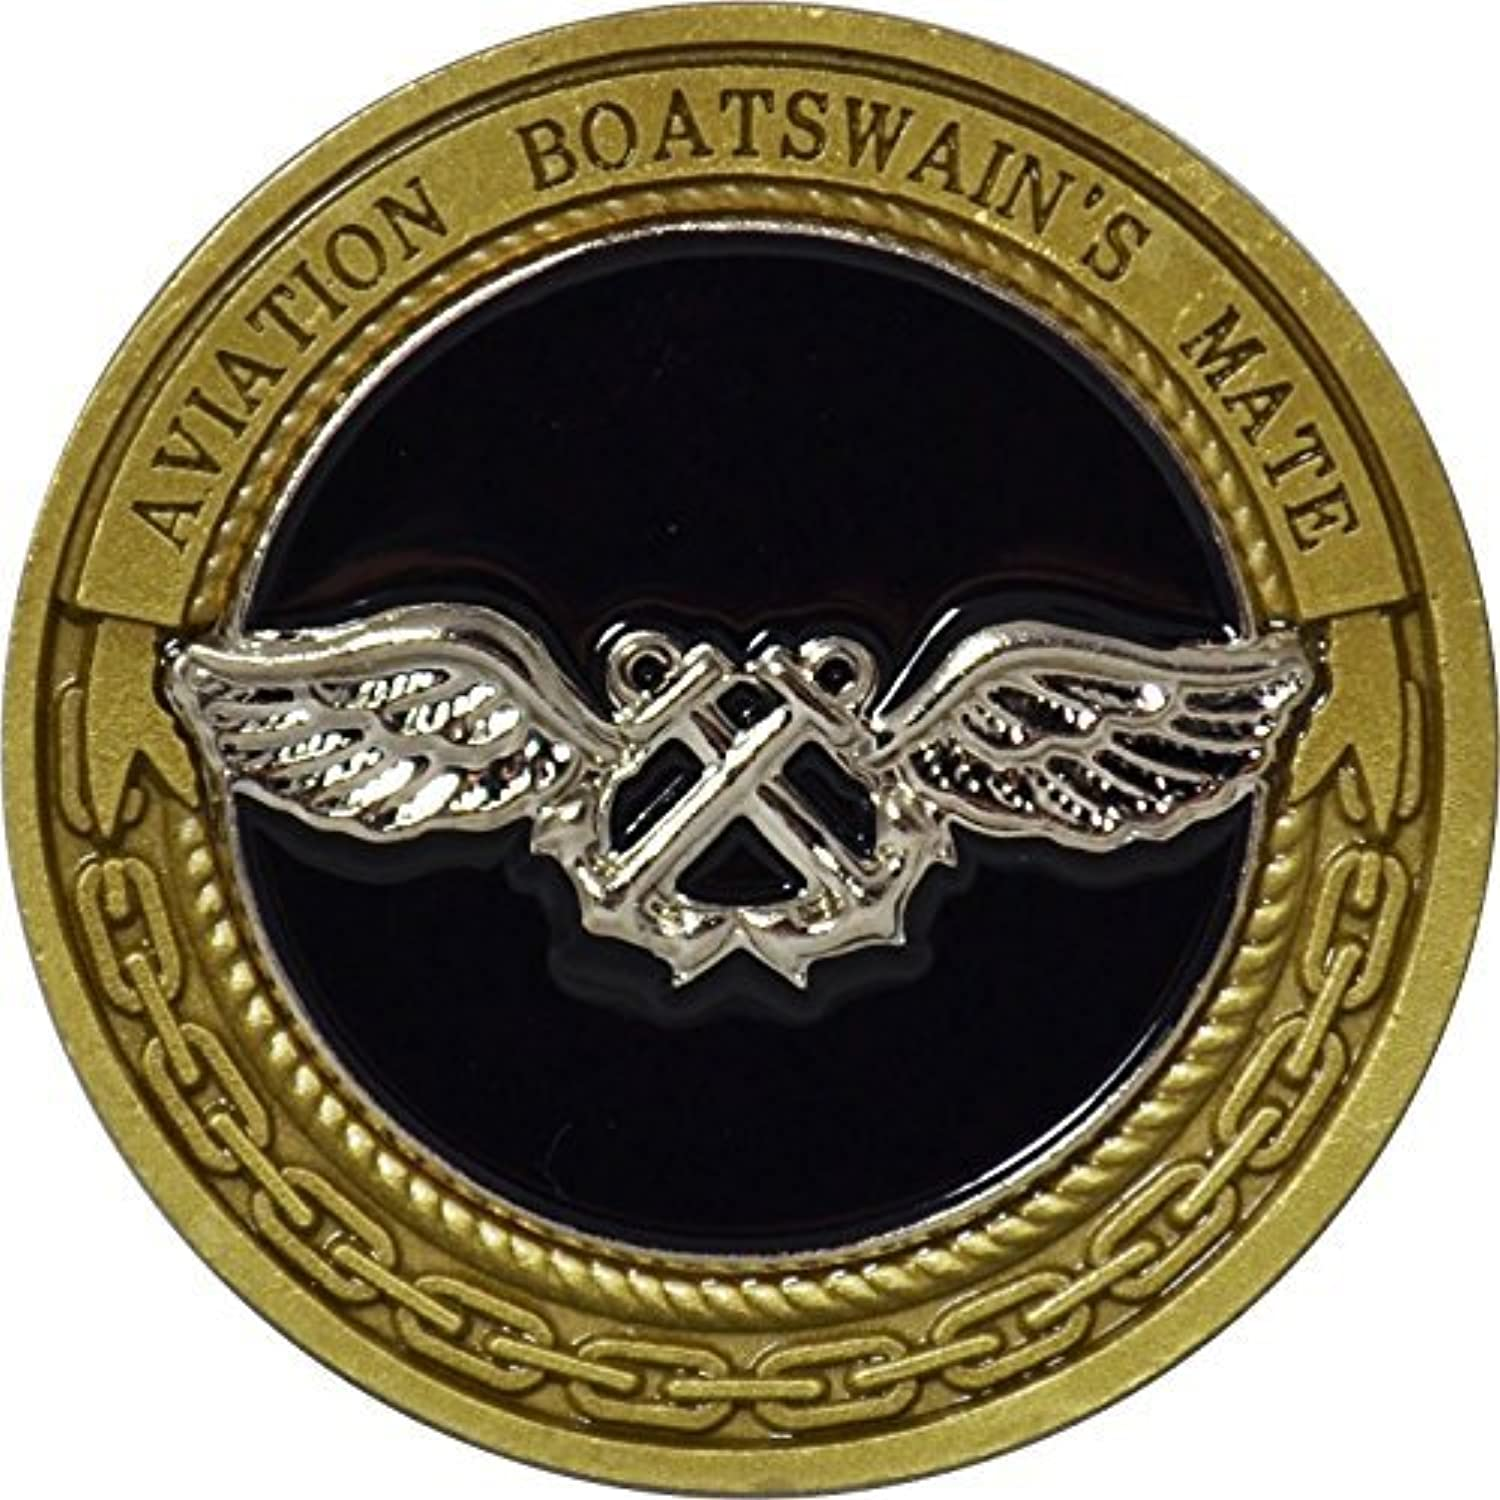 Navy Aviation Boatswain's Mate Challenge Coin by Military Productions